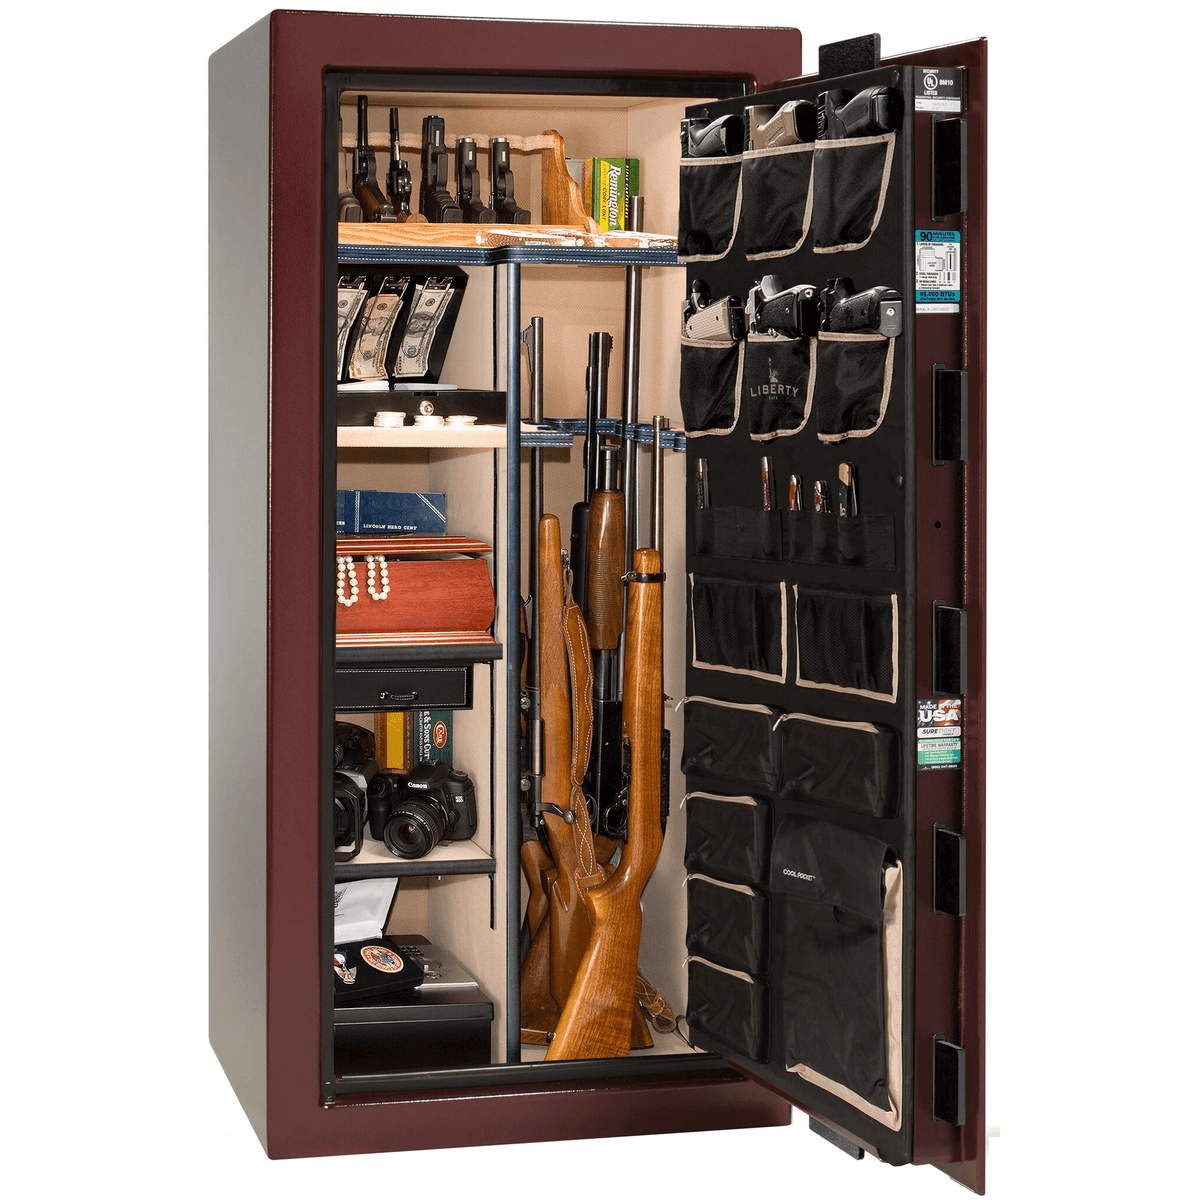 "Classic Select | 25 | Level 6 Security | 90 Minute Fire Protection | Burgundy | Black Electronic Lock | 60.5""(H) x 30""(W) x 28.5""(D)"